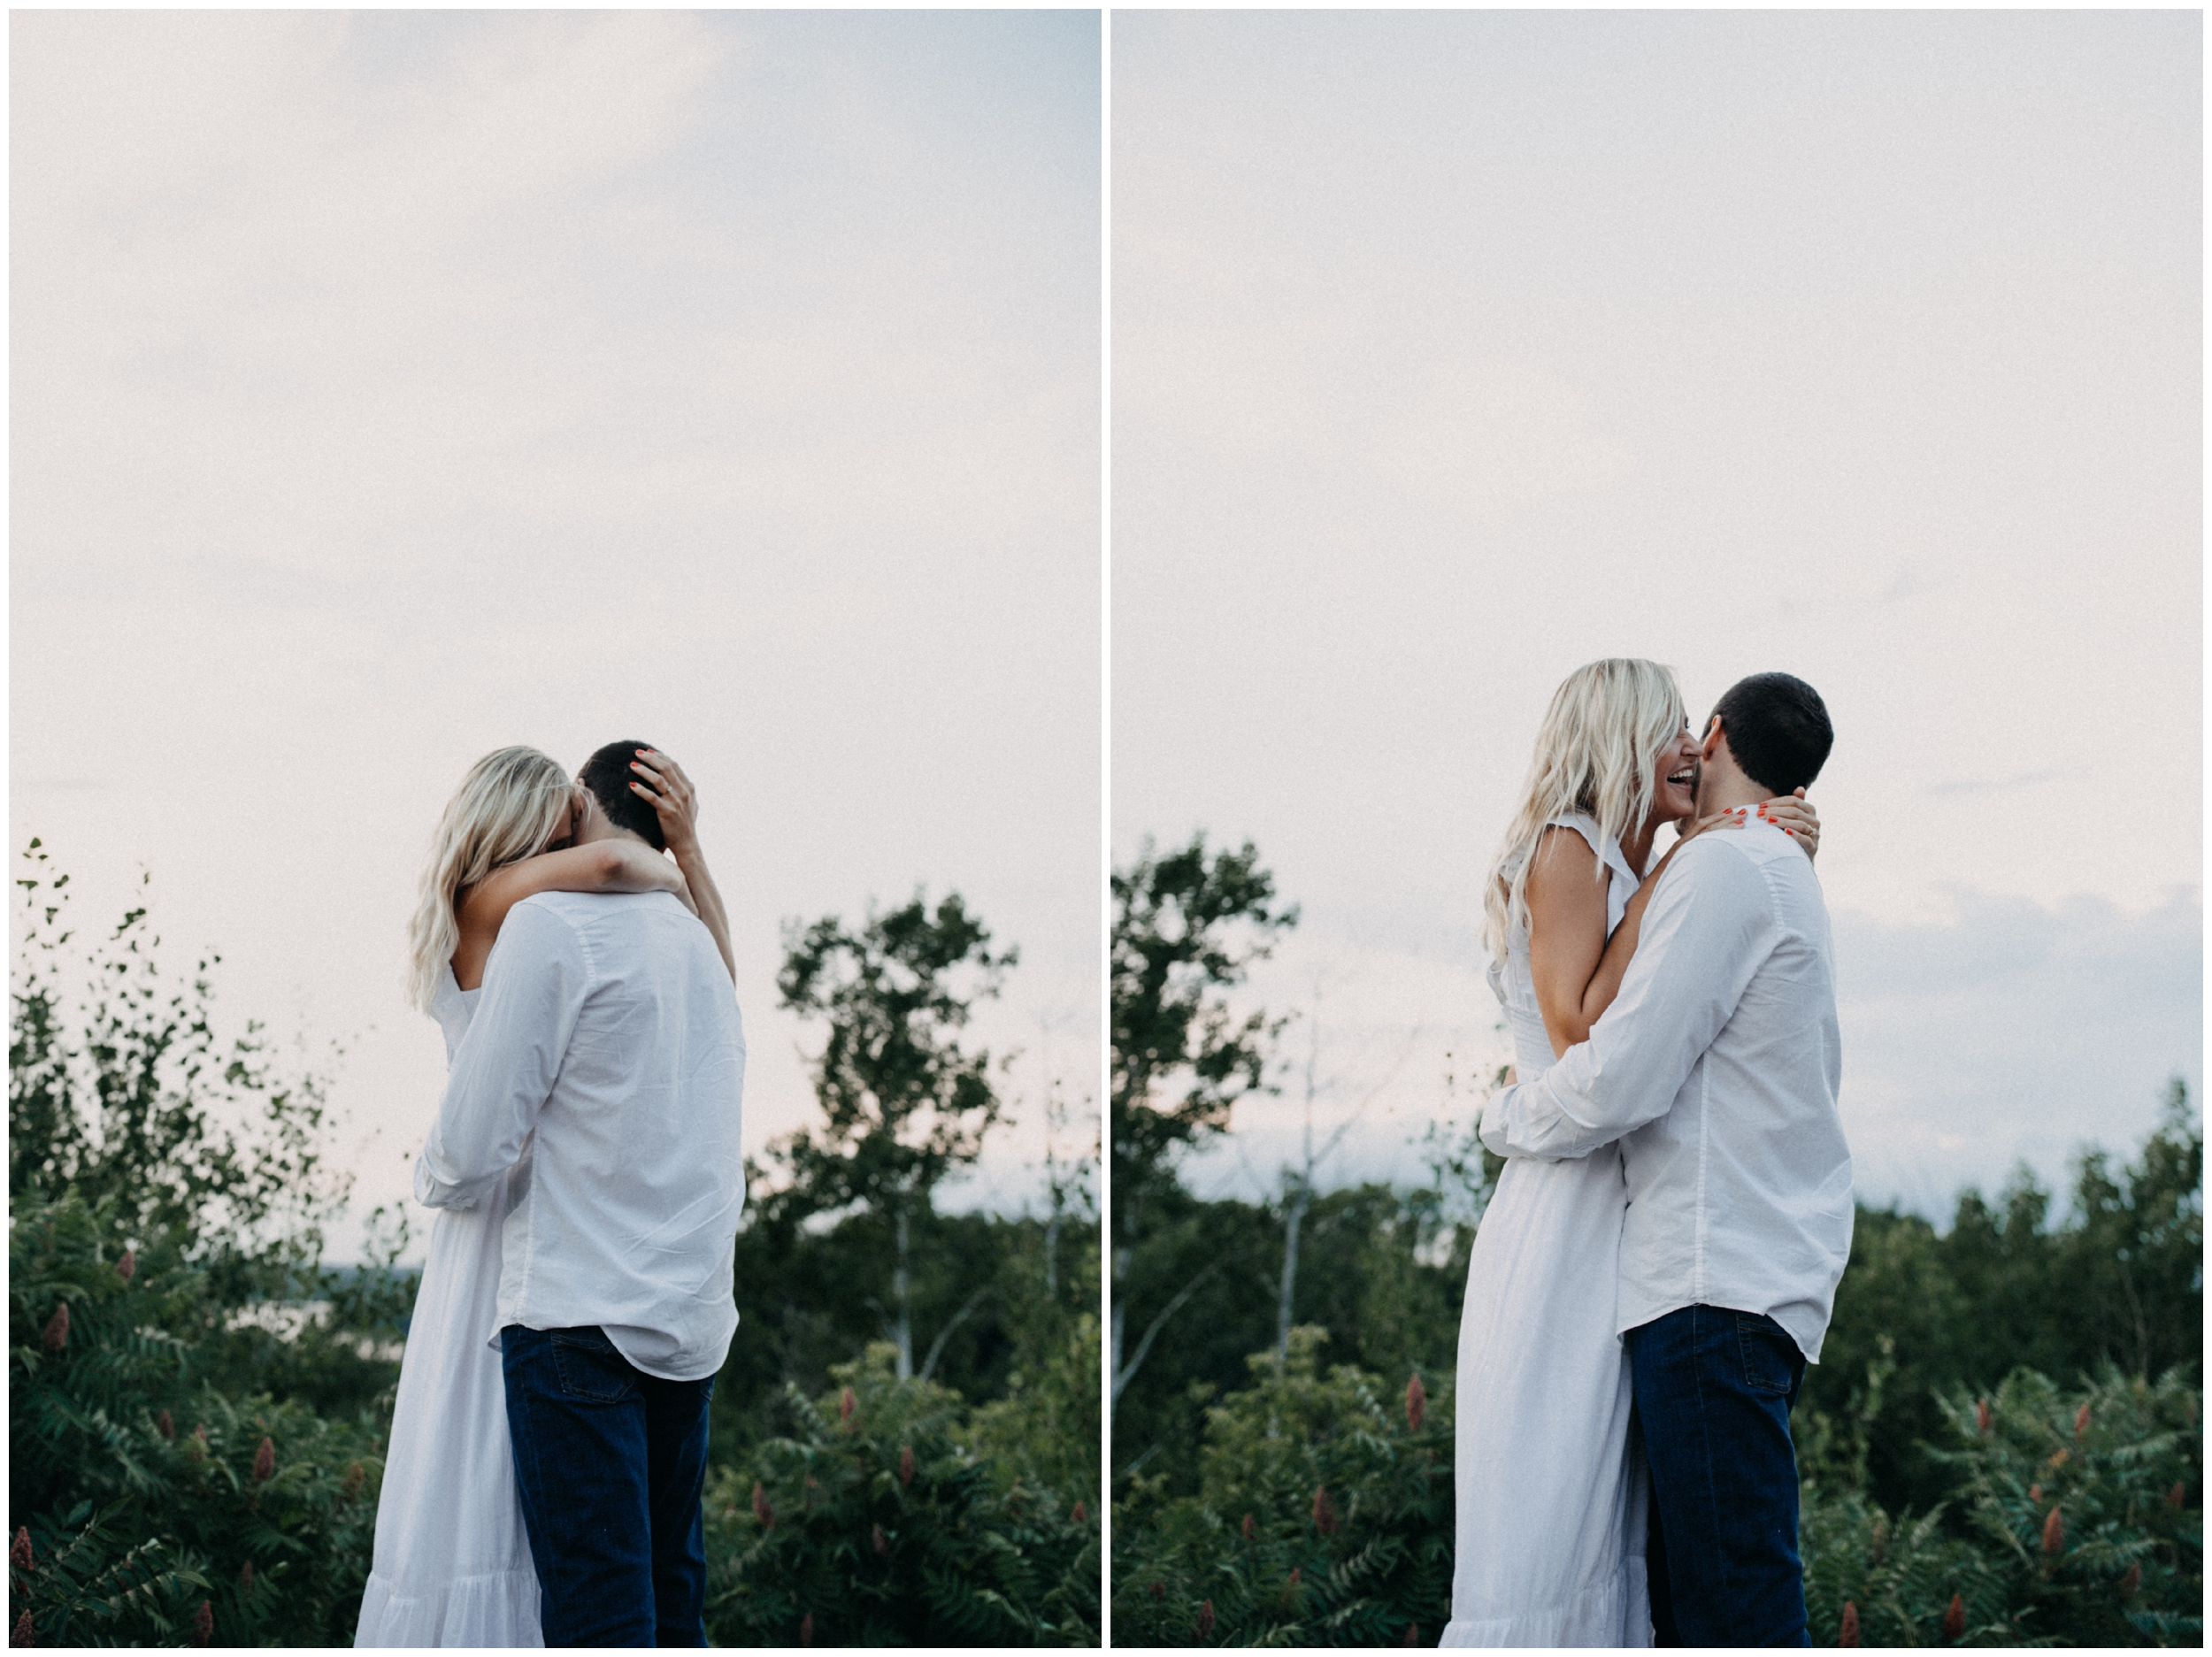 Romantic and emotional engagement photography  on Miner's Mountain by Britt DeZeeuw